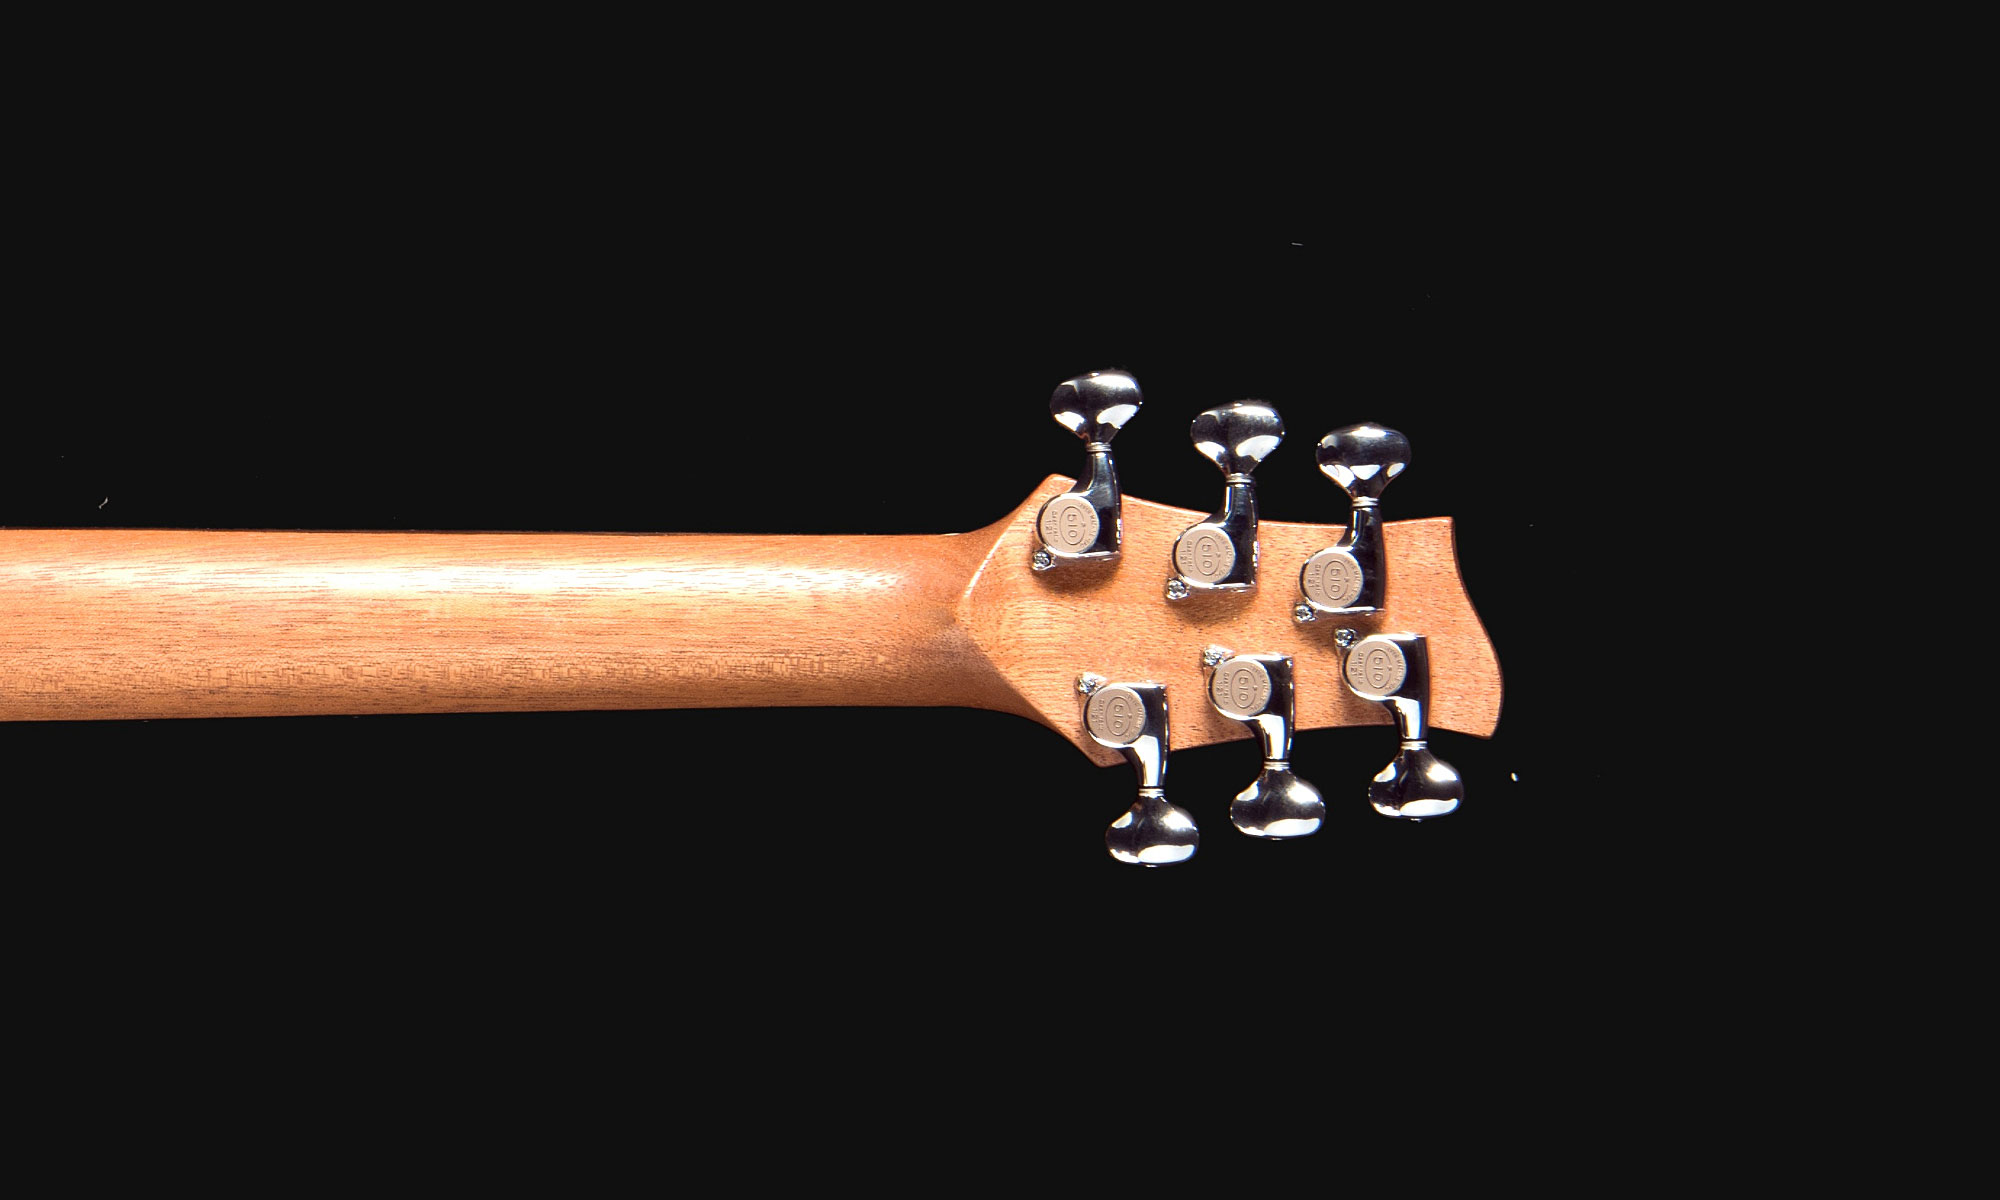 magnesia-headstock-back